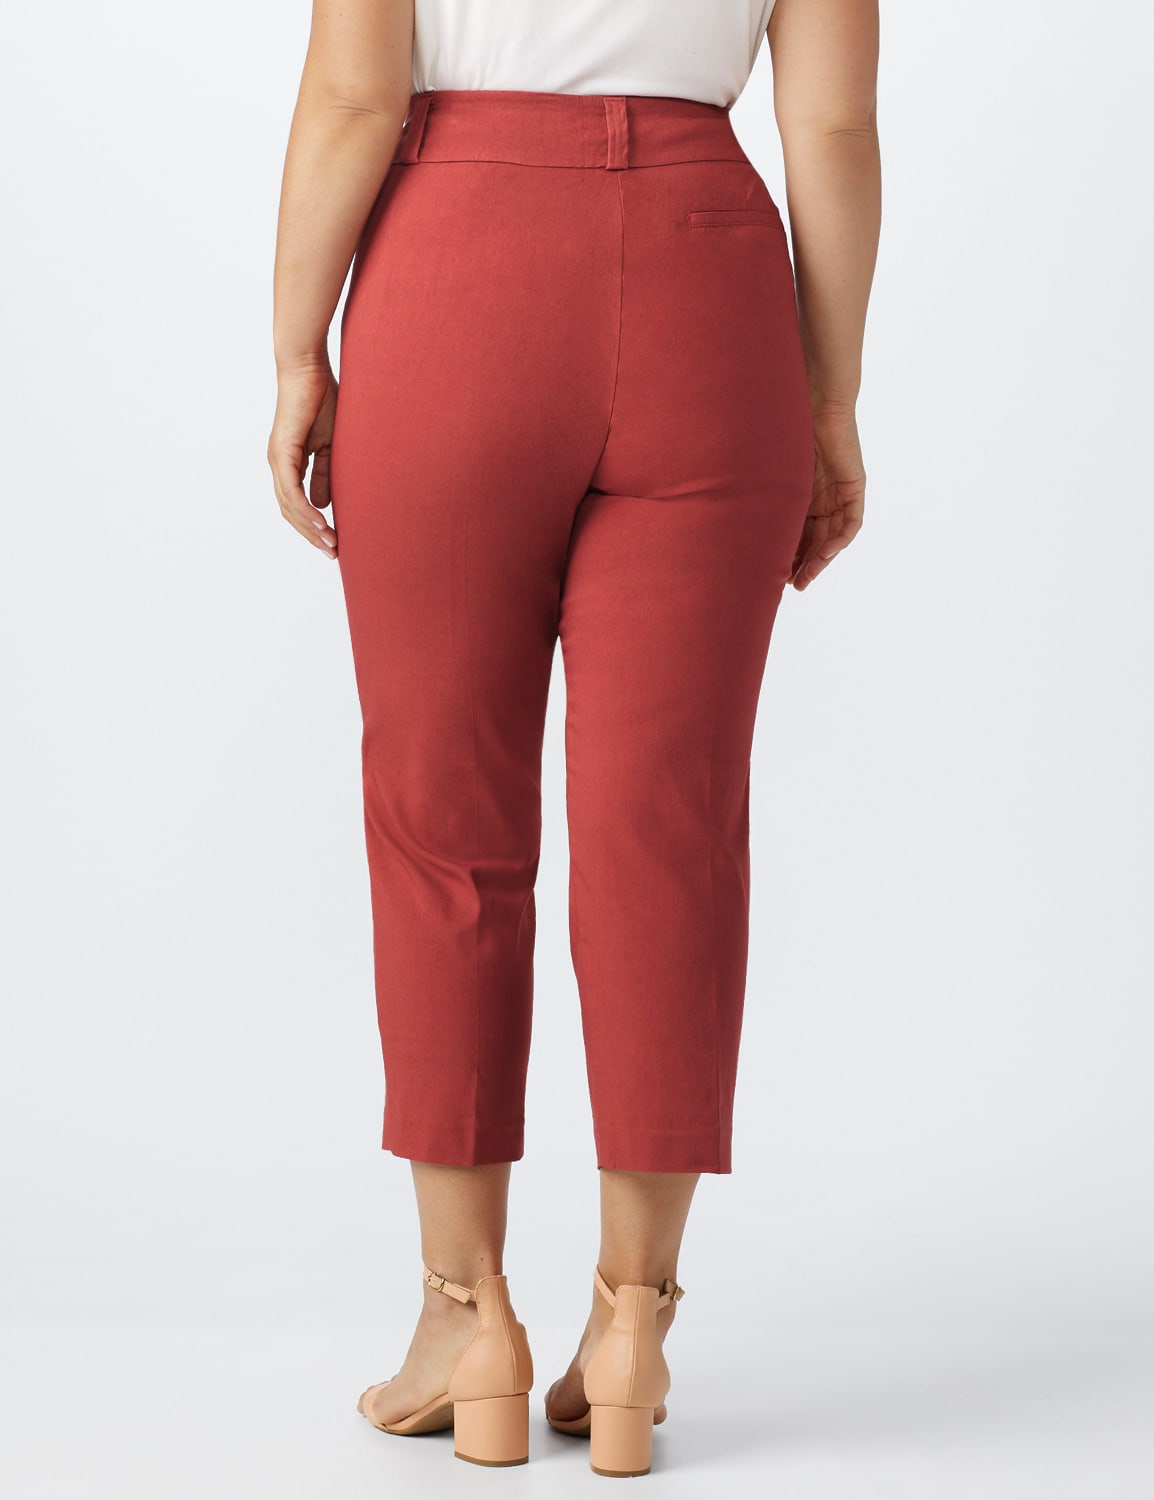 Plus- Pull On Ankle Length Pants With Zipper And Metal Tab - Terra Rose - Back